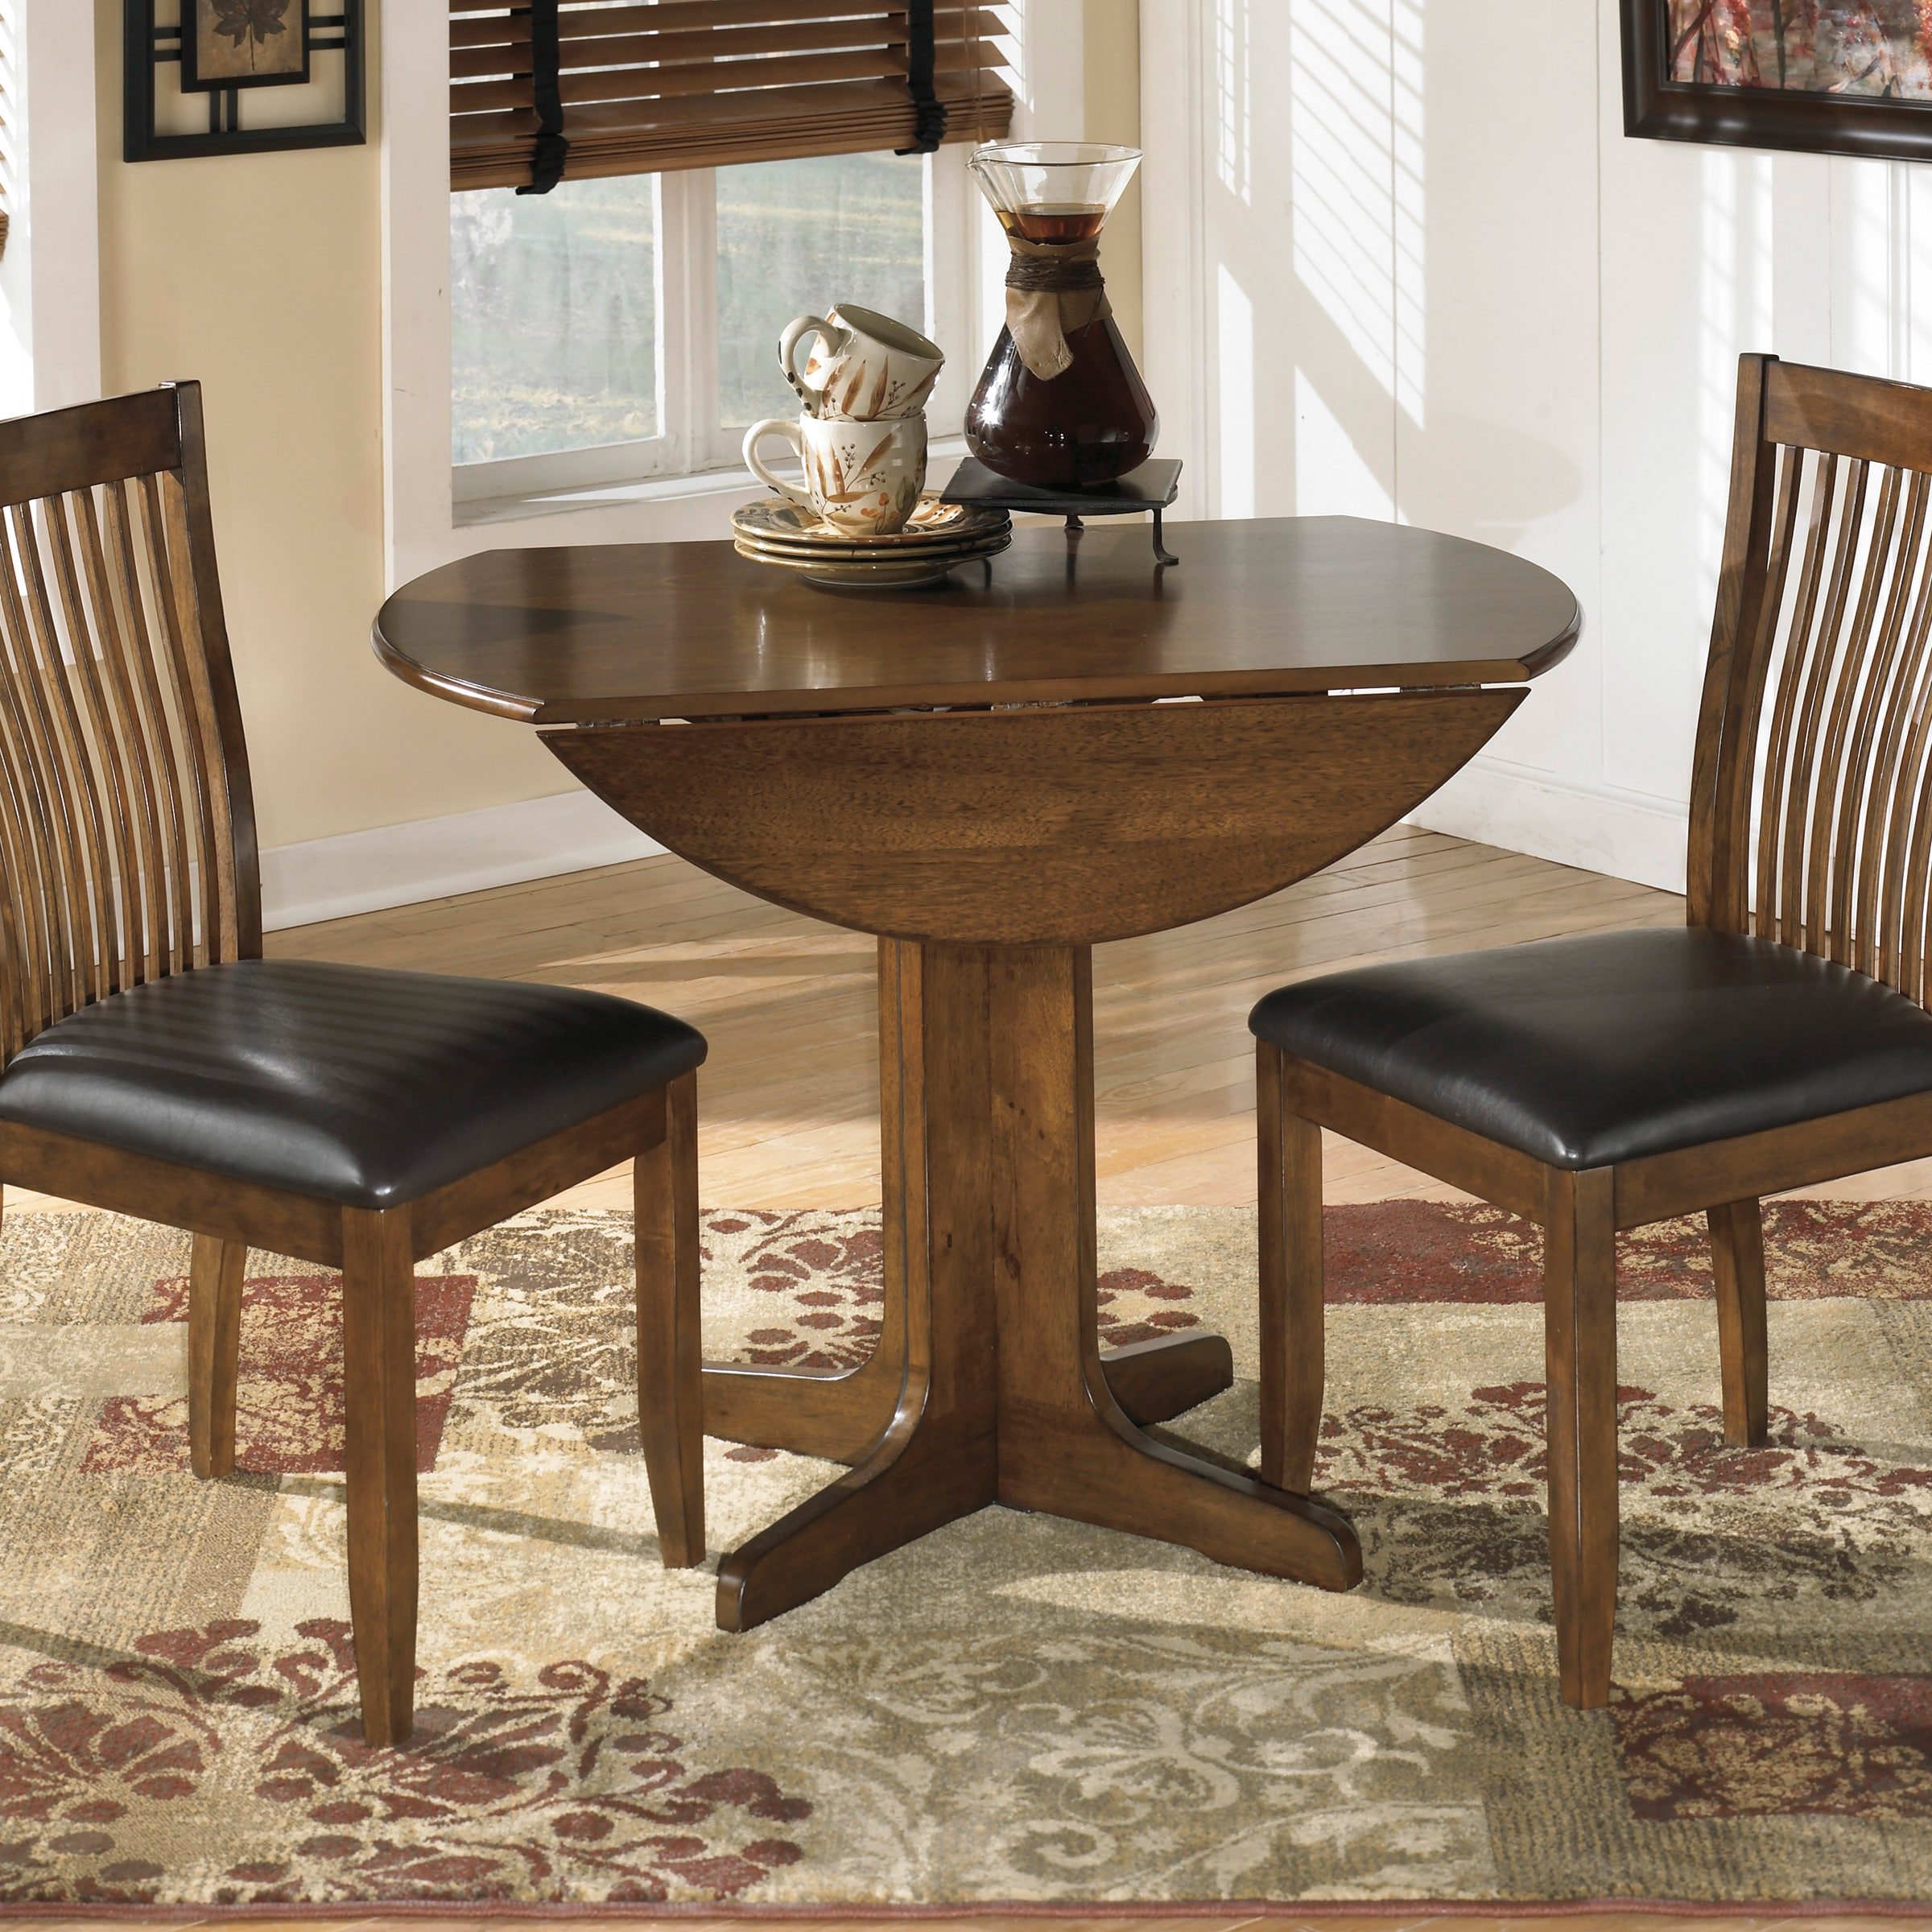 Signature Designs By Ashley Stuman Round Drop leaf Table